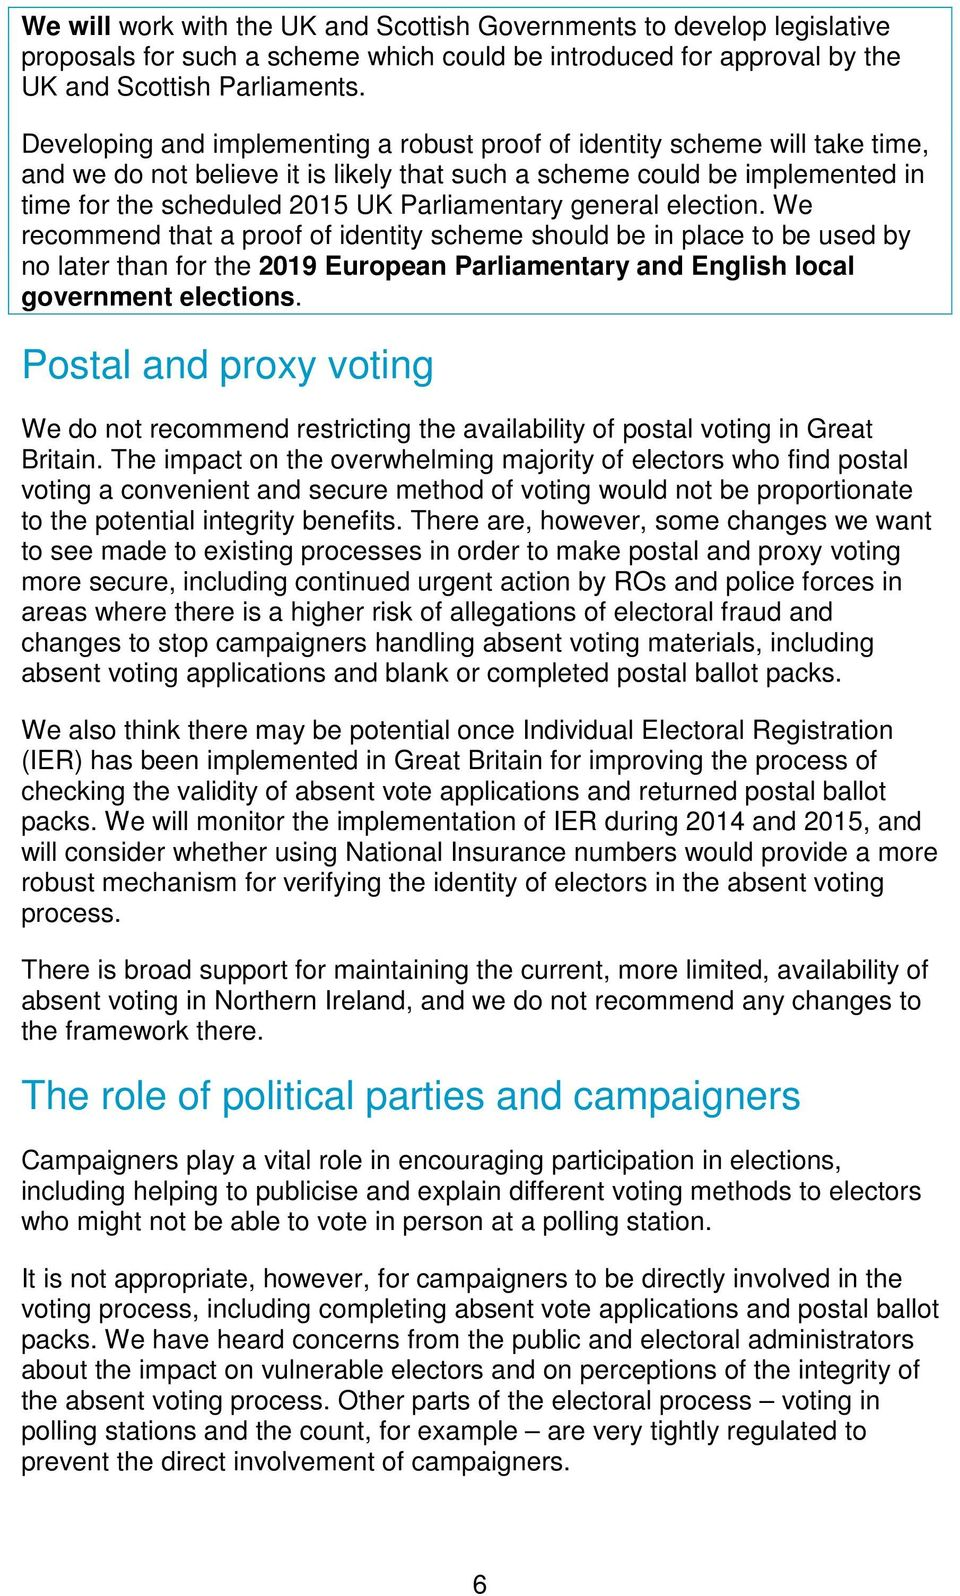 Parliamentary general election. We recommend that a proof of identity scheme should be in place to be used by no later than for the 2019 European Parliamentary and English local government elections.